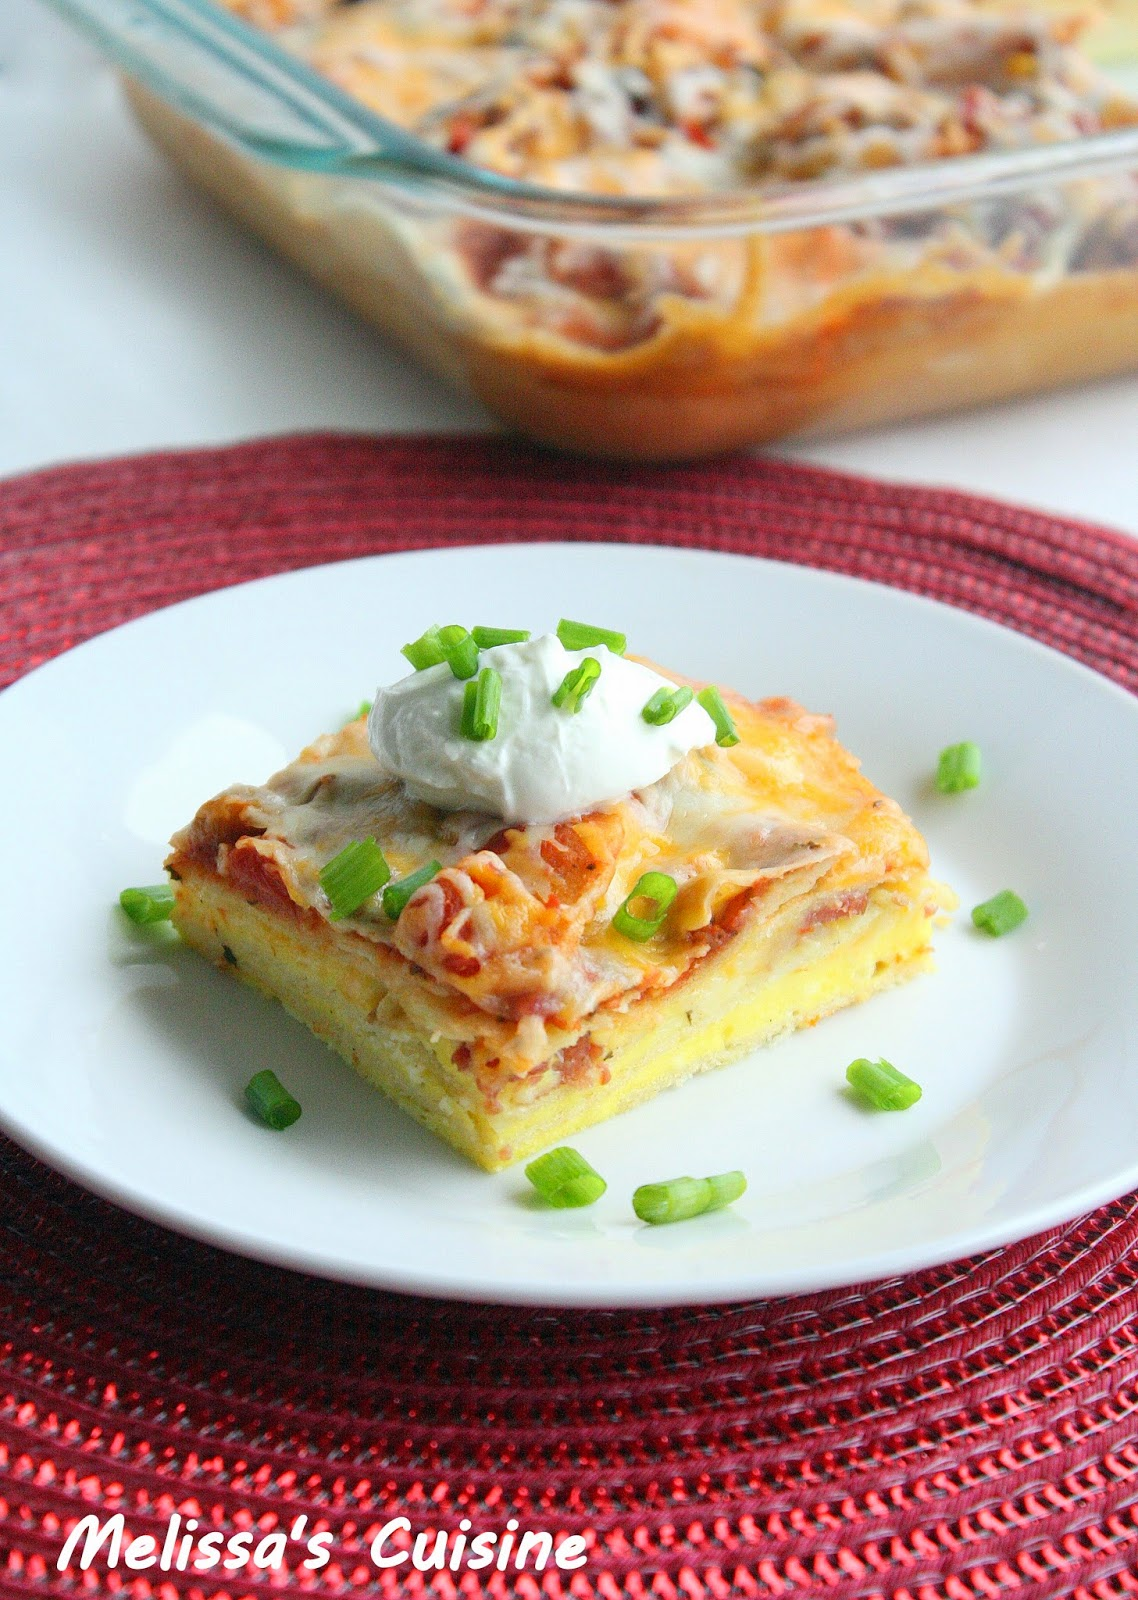 Melissa's Cuisine: Egg and Tortilla Breakfast Casserole